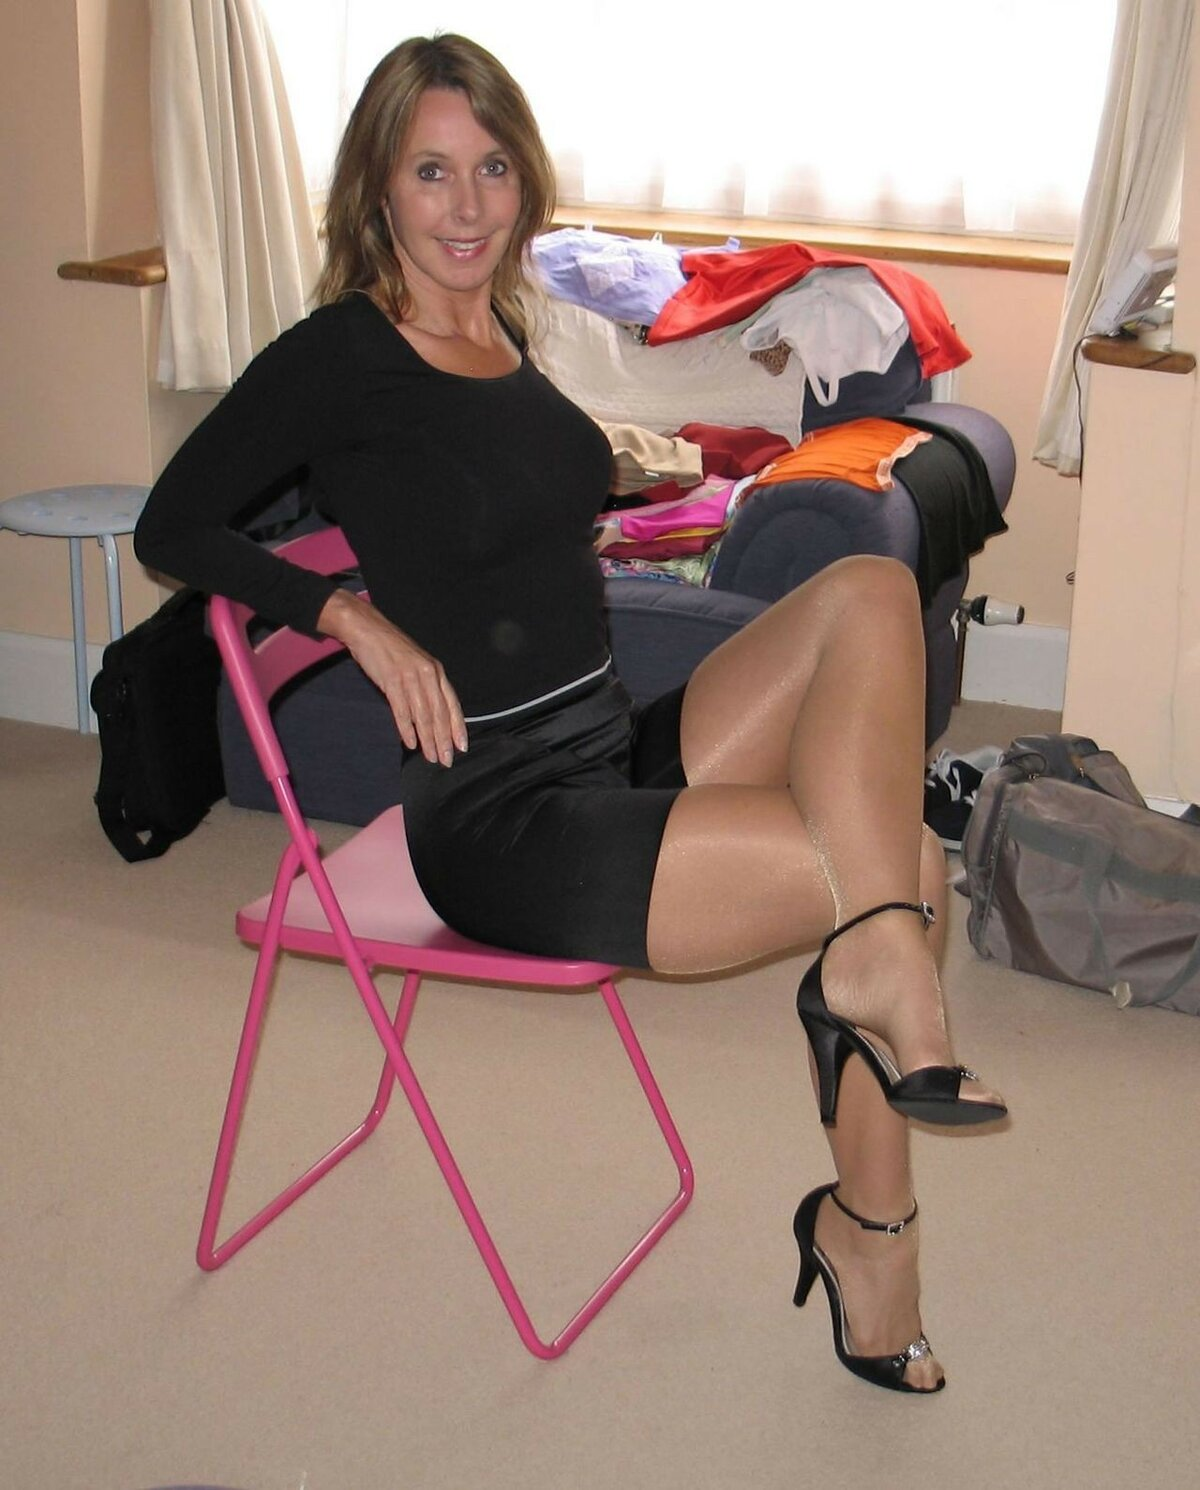 amateur-housewifes-nylons-and-heels-porno-bigest-pinos